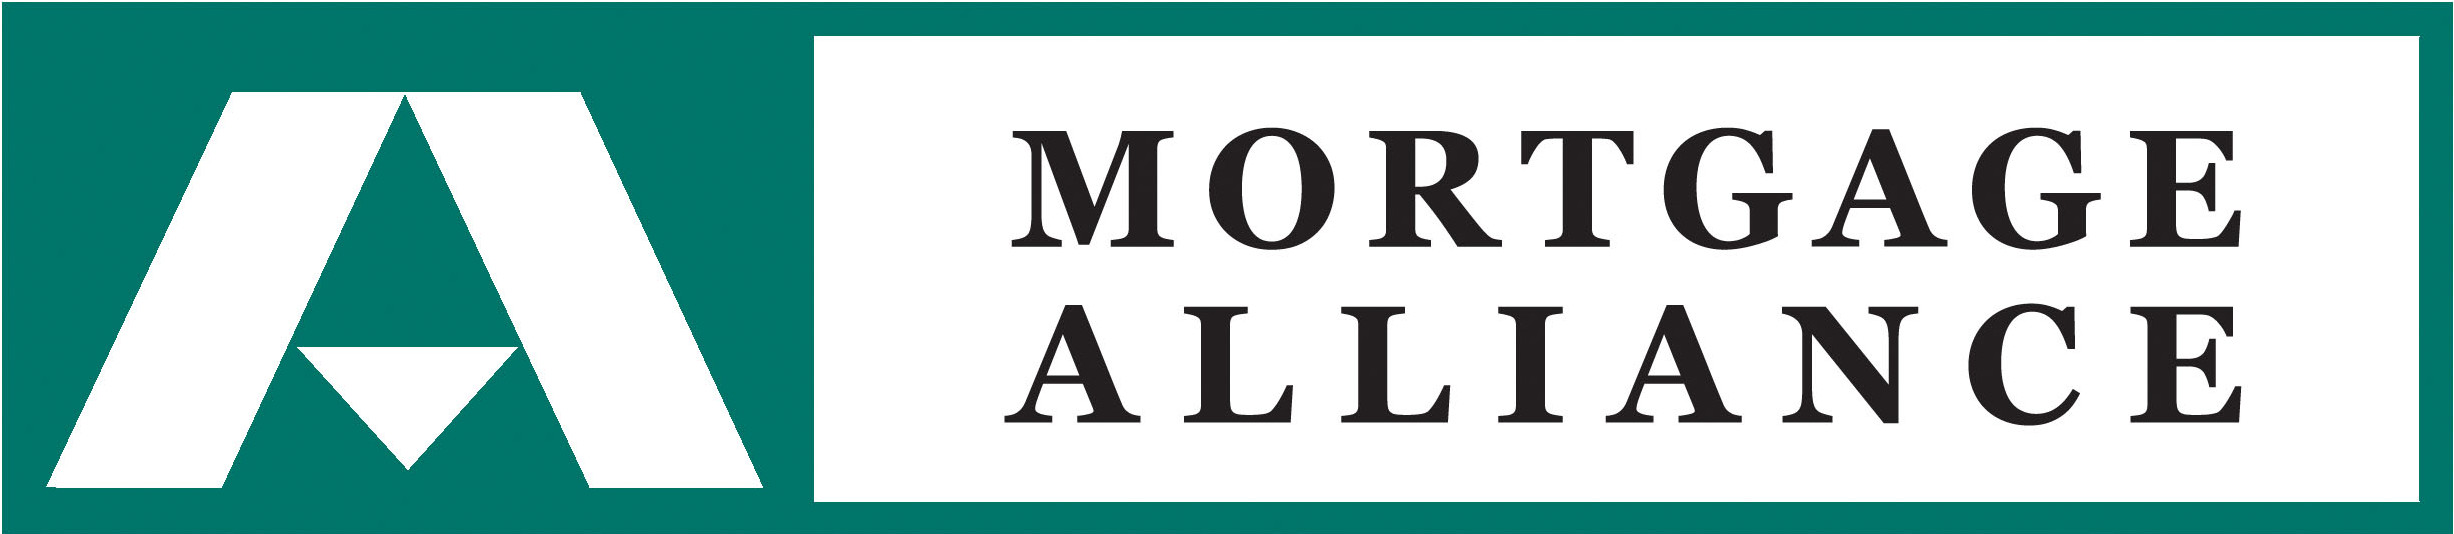 Alliance Mortgage Logo PNG